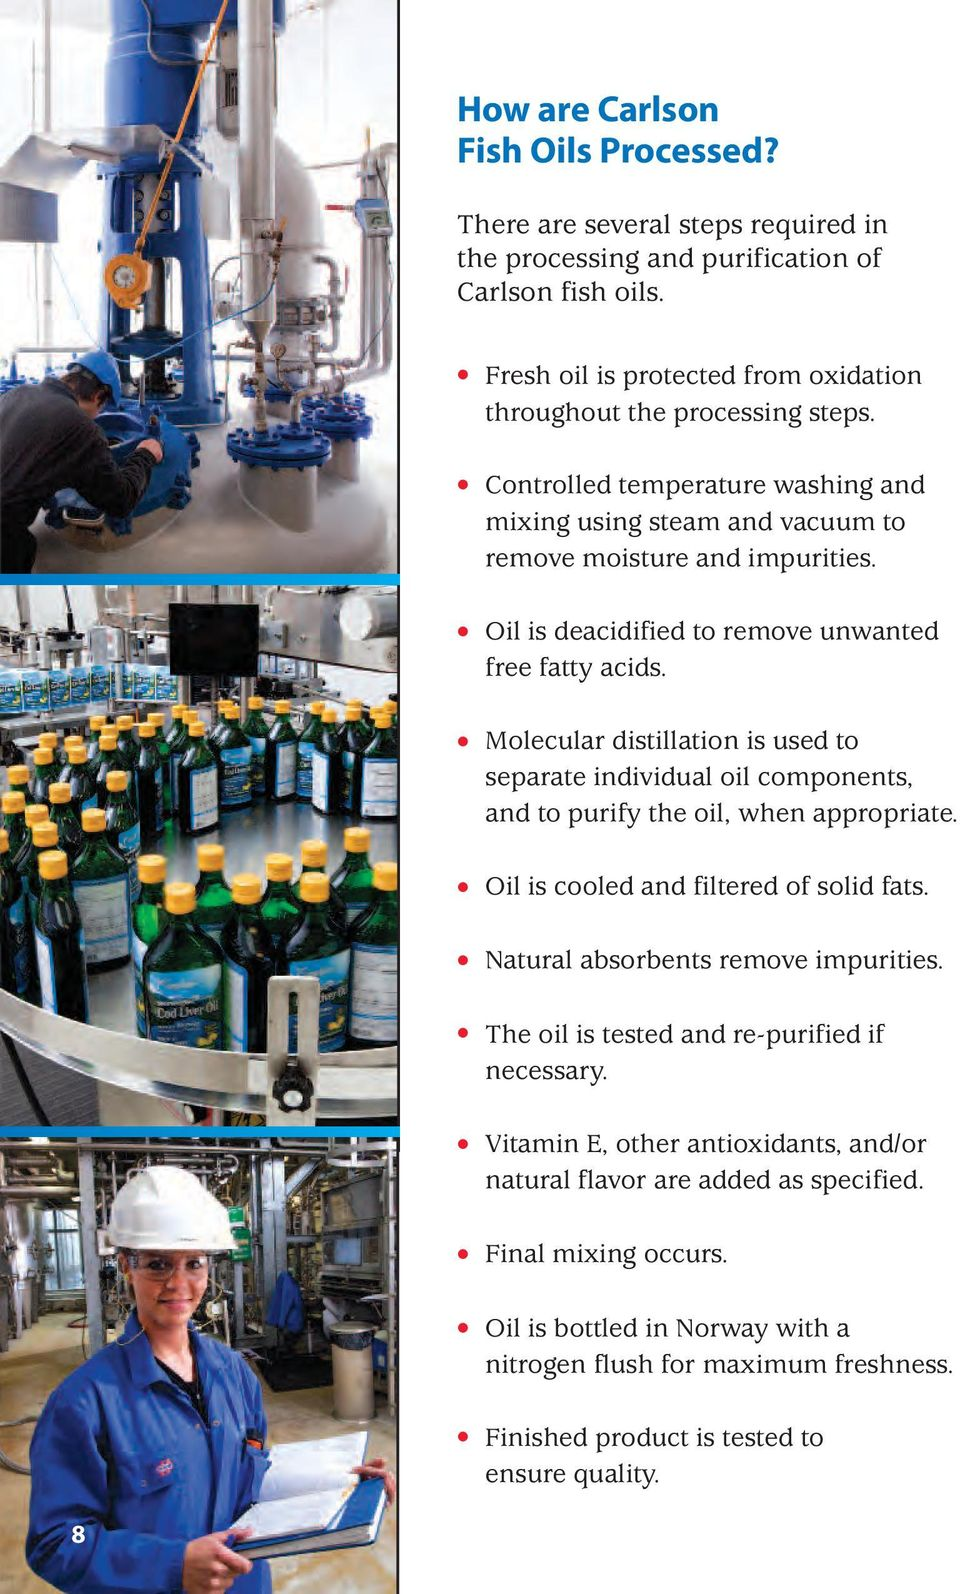 Molecular distillation is used to separate individual oil components, and to purify the oil, when appropriate. Oil is cooled and filtered of solid fats. Natural absorbents remove impurities.